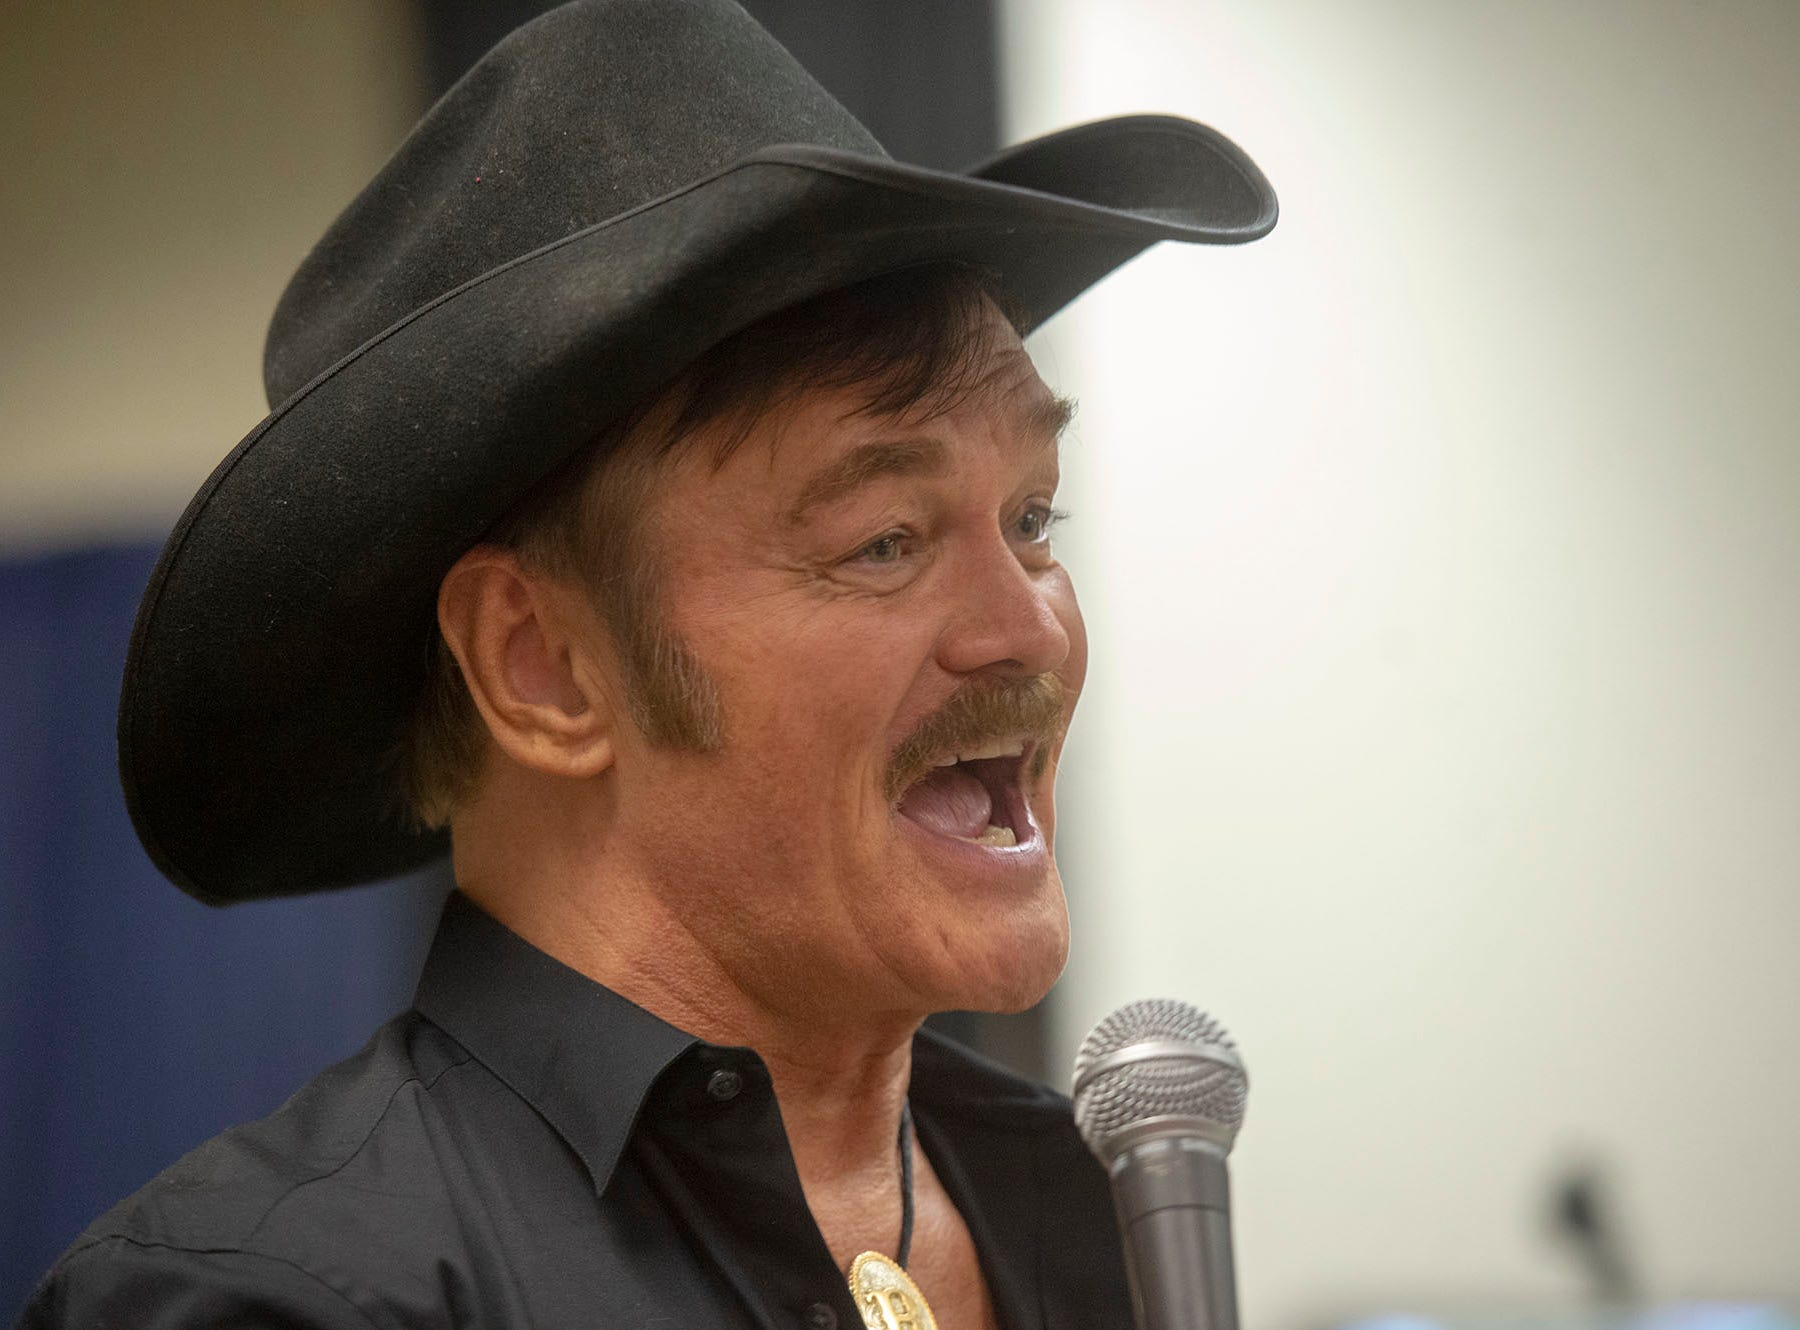 """Randy Jones joined Felipe Rose at the end to sing """"Y.M.C.A."""" Saturday at the White Rose Comic Con, which runs through Sunday, March 24, 2019 at Utz Arena of the York Fairgrounds."""